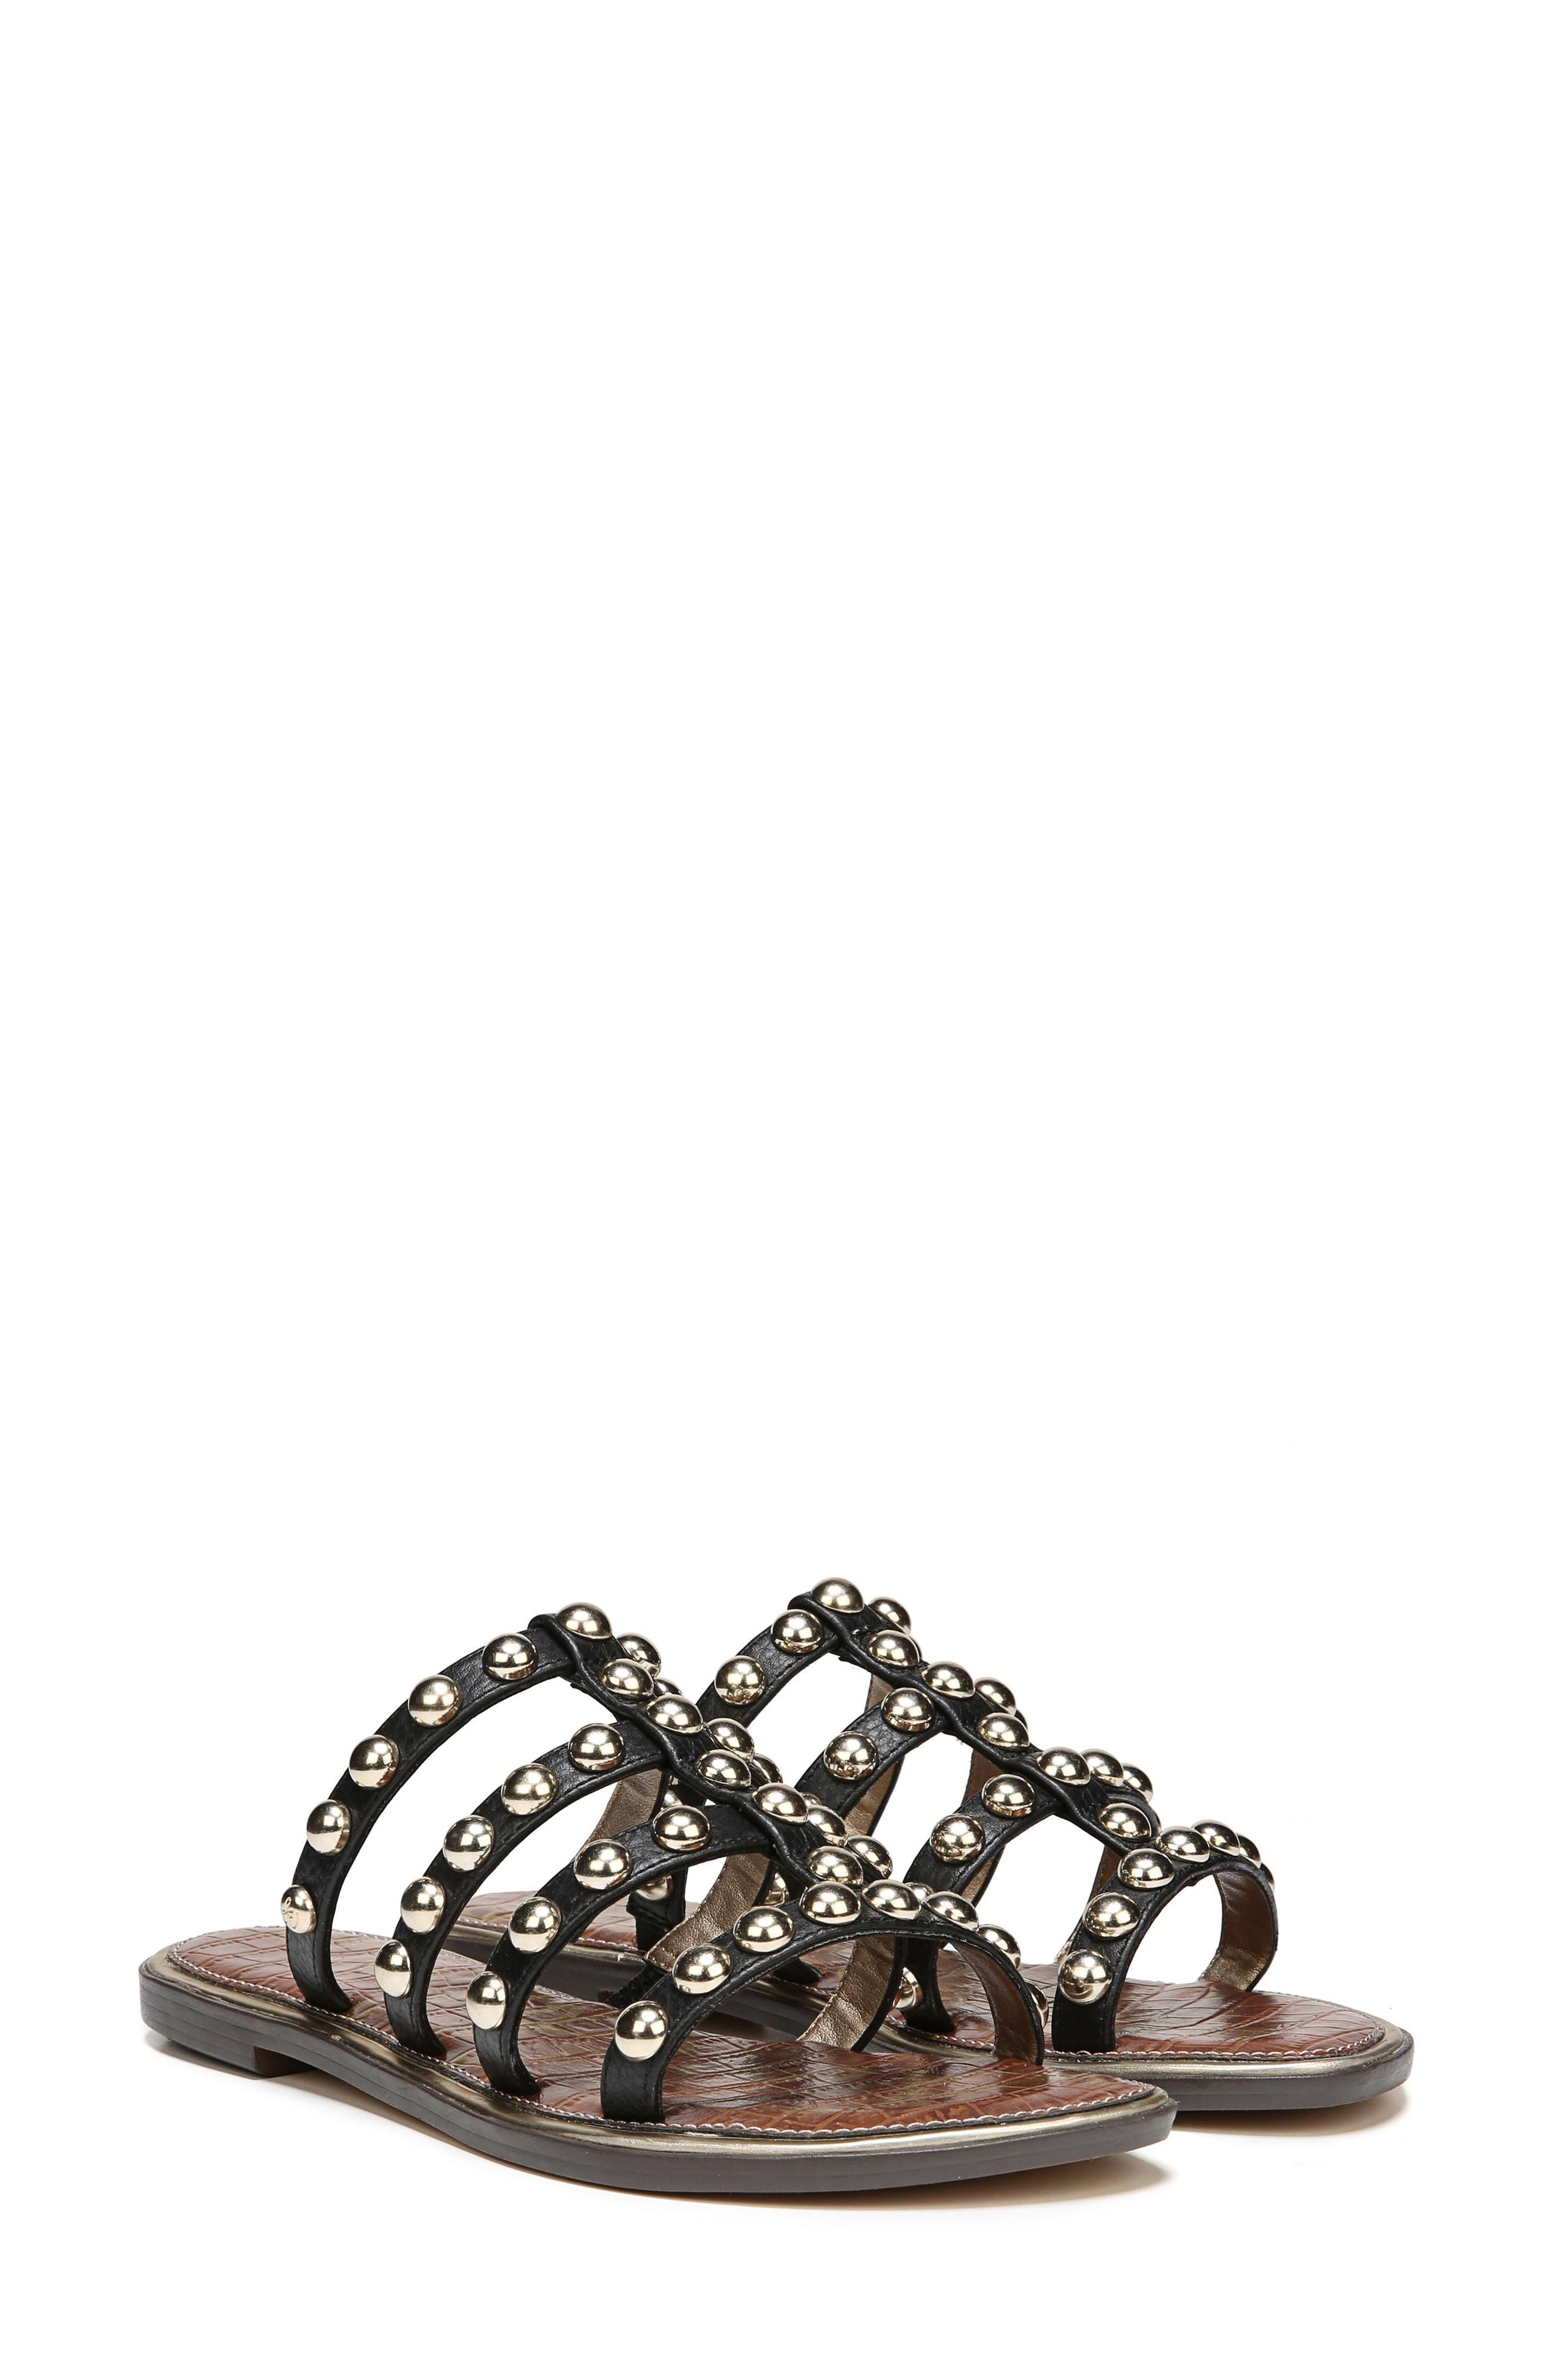 Glenn Studded Slide Sandal,                             Alternate thumbnail 7, color,                             001